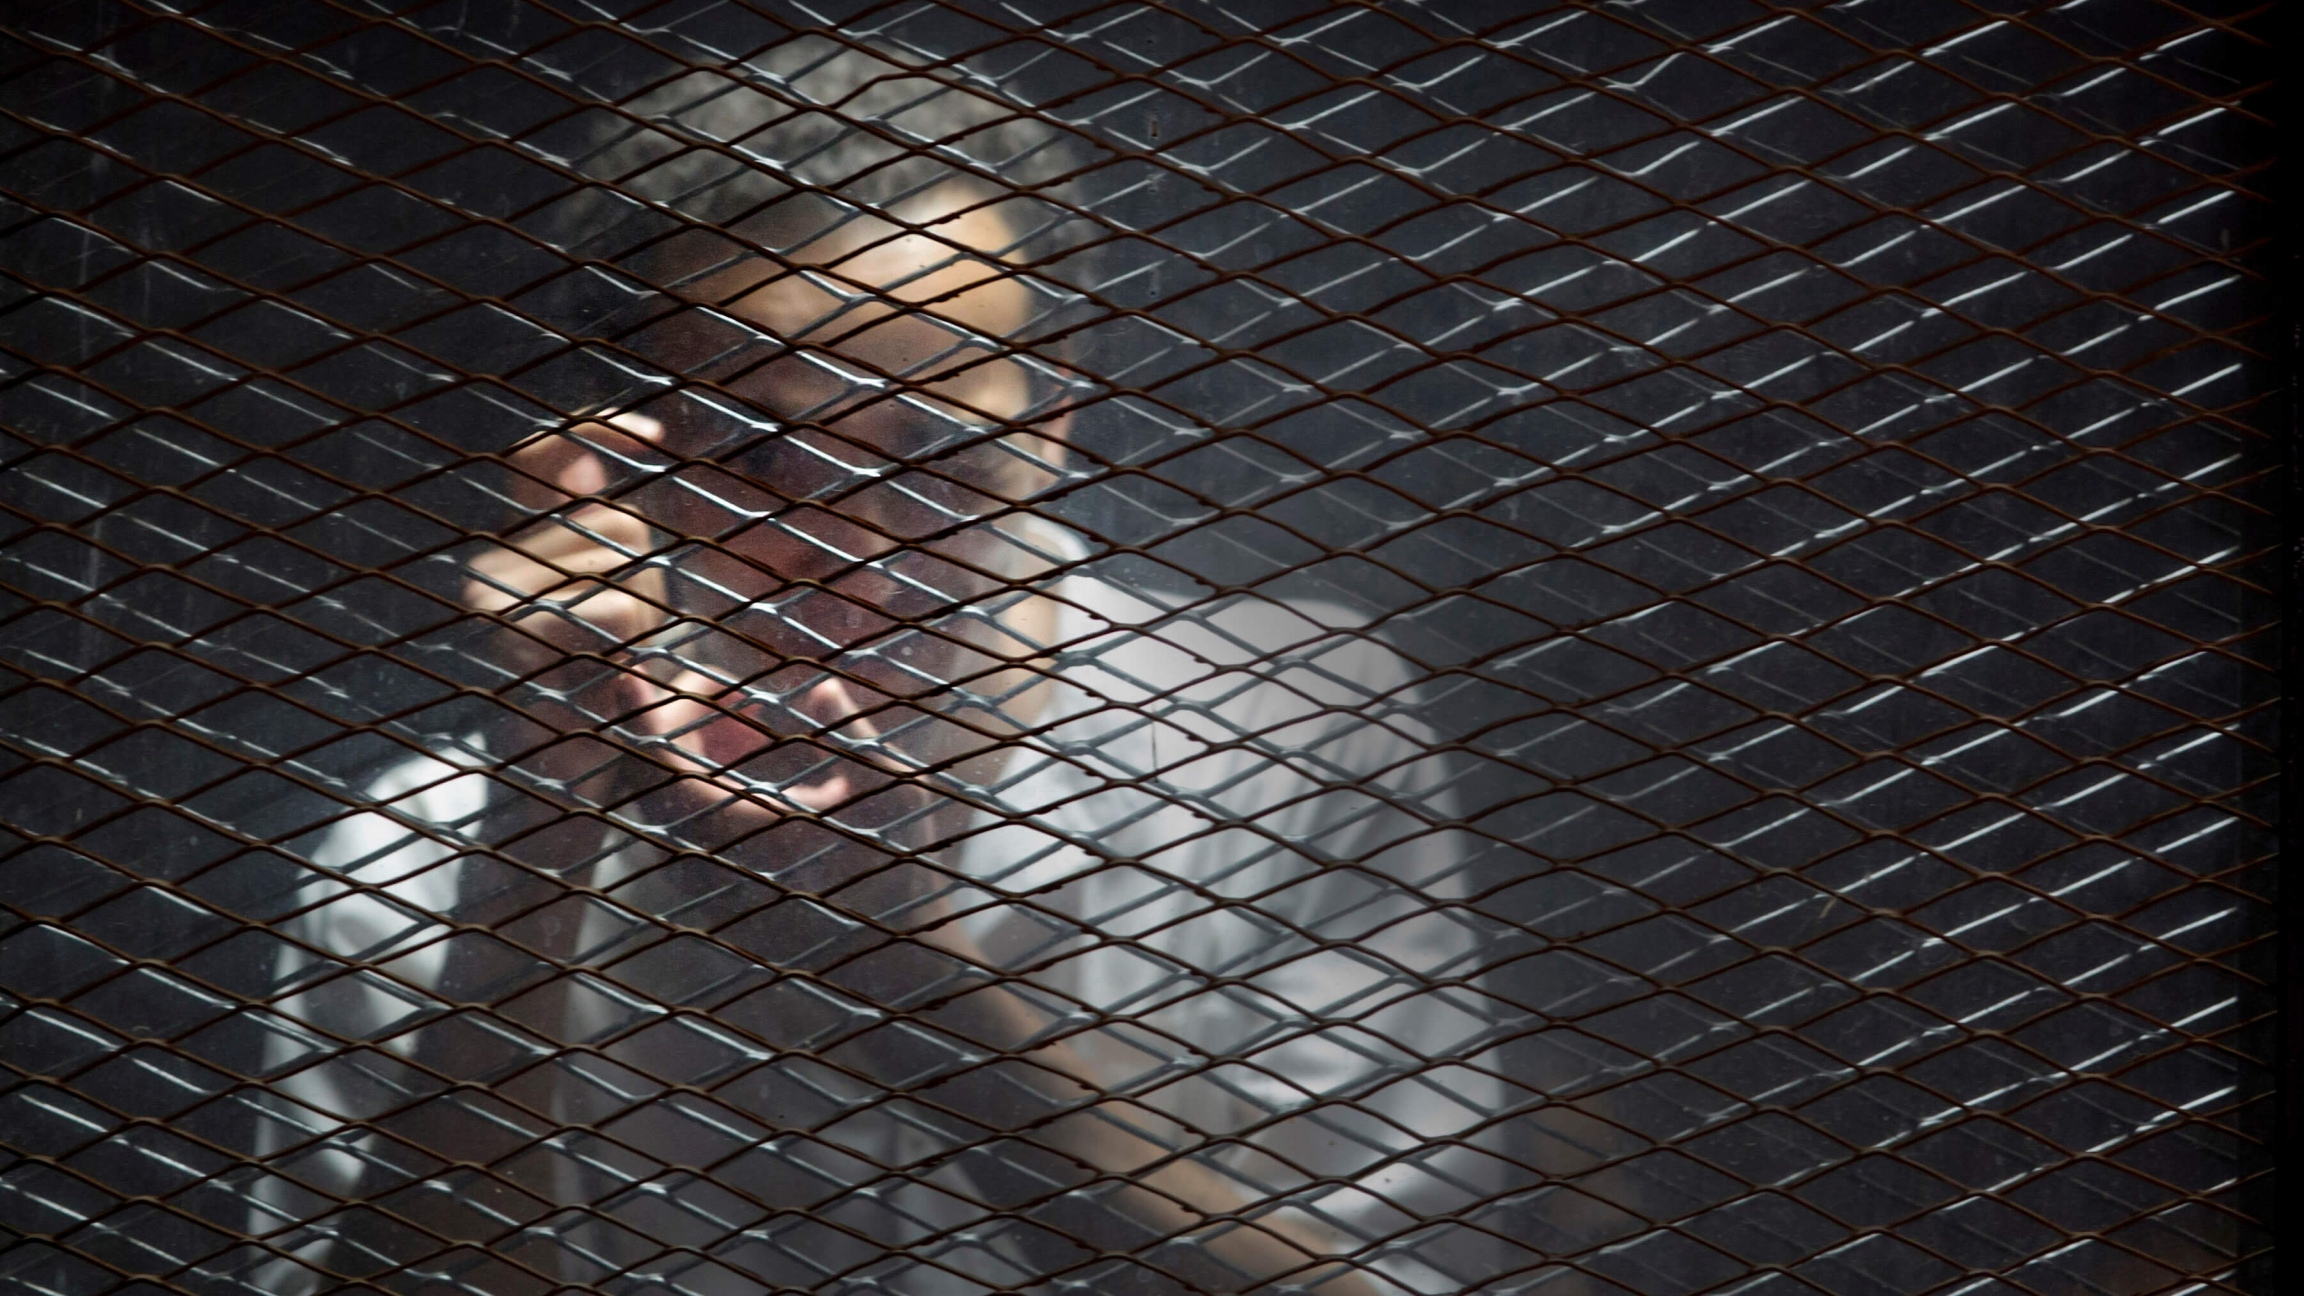 Egyptian photojournalist Mahmoud Abu Zied, known by his nickname Shawkan, gestures in a soundproof glass cage.